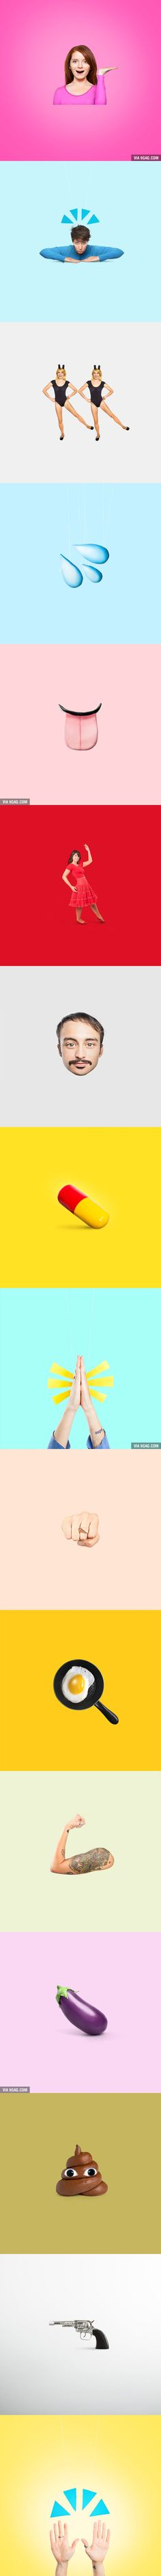 Weird Emojis Are Recreated In Real Life And They Still Don't Make Sense